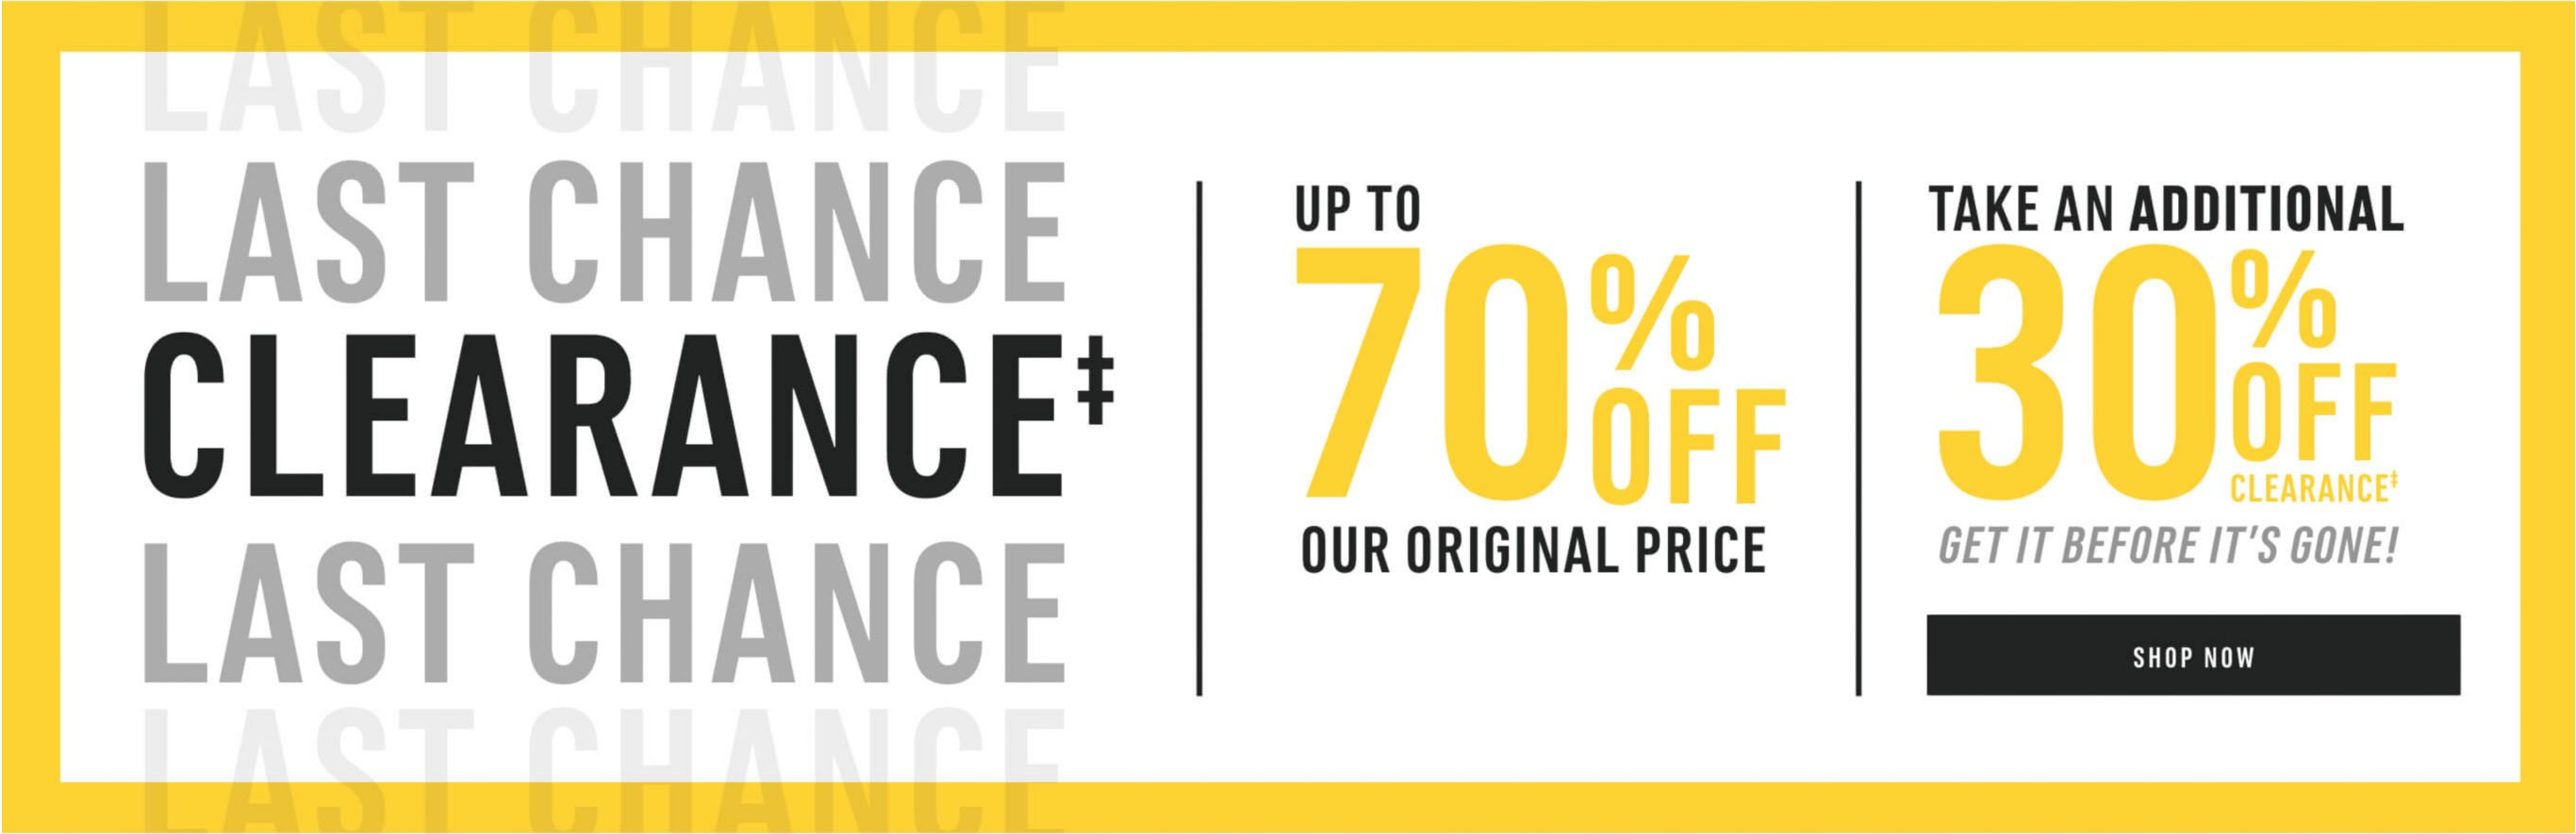 Clearance up to 70% Off Our Original Price. And take and Additional 30% Off. Shop Now!